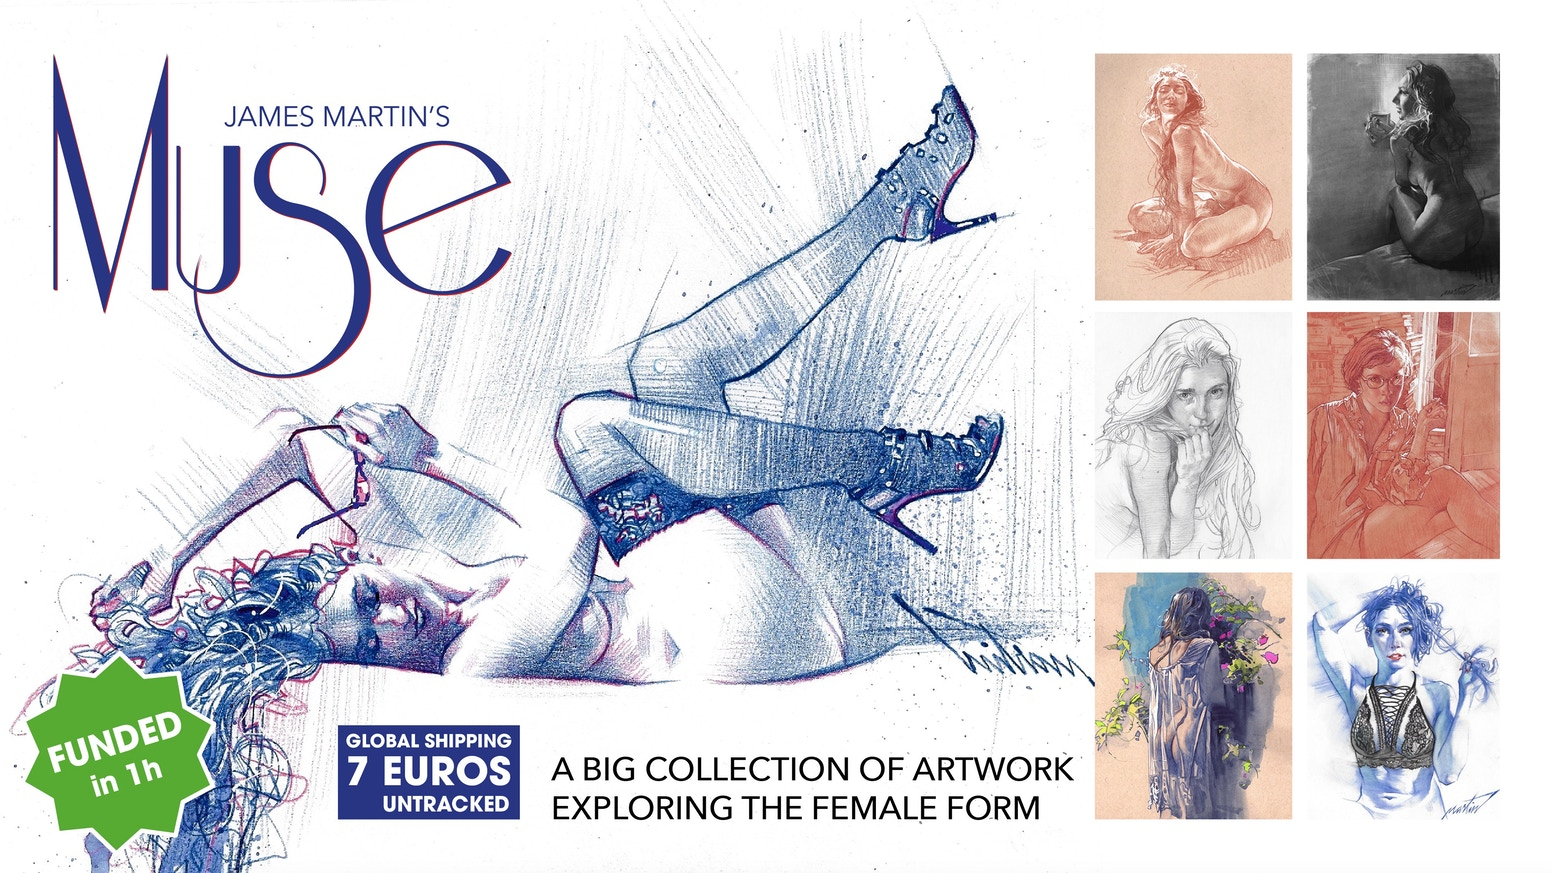 A celebration of the female form